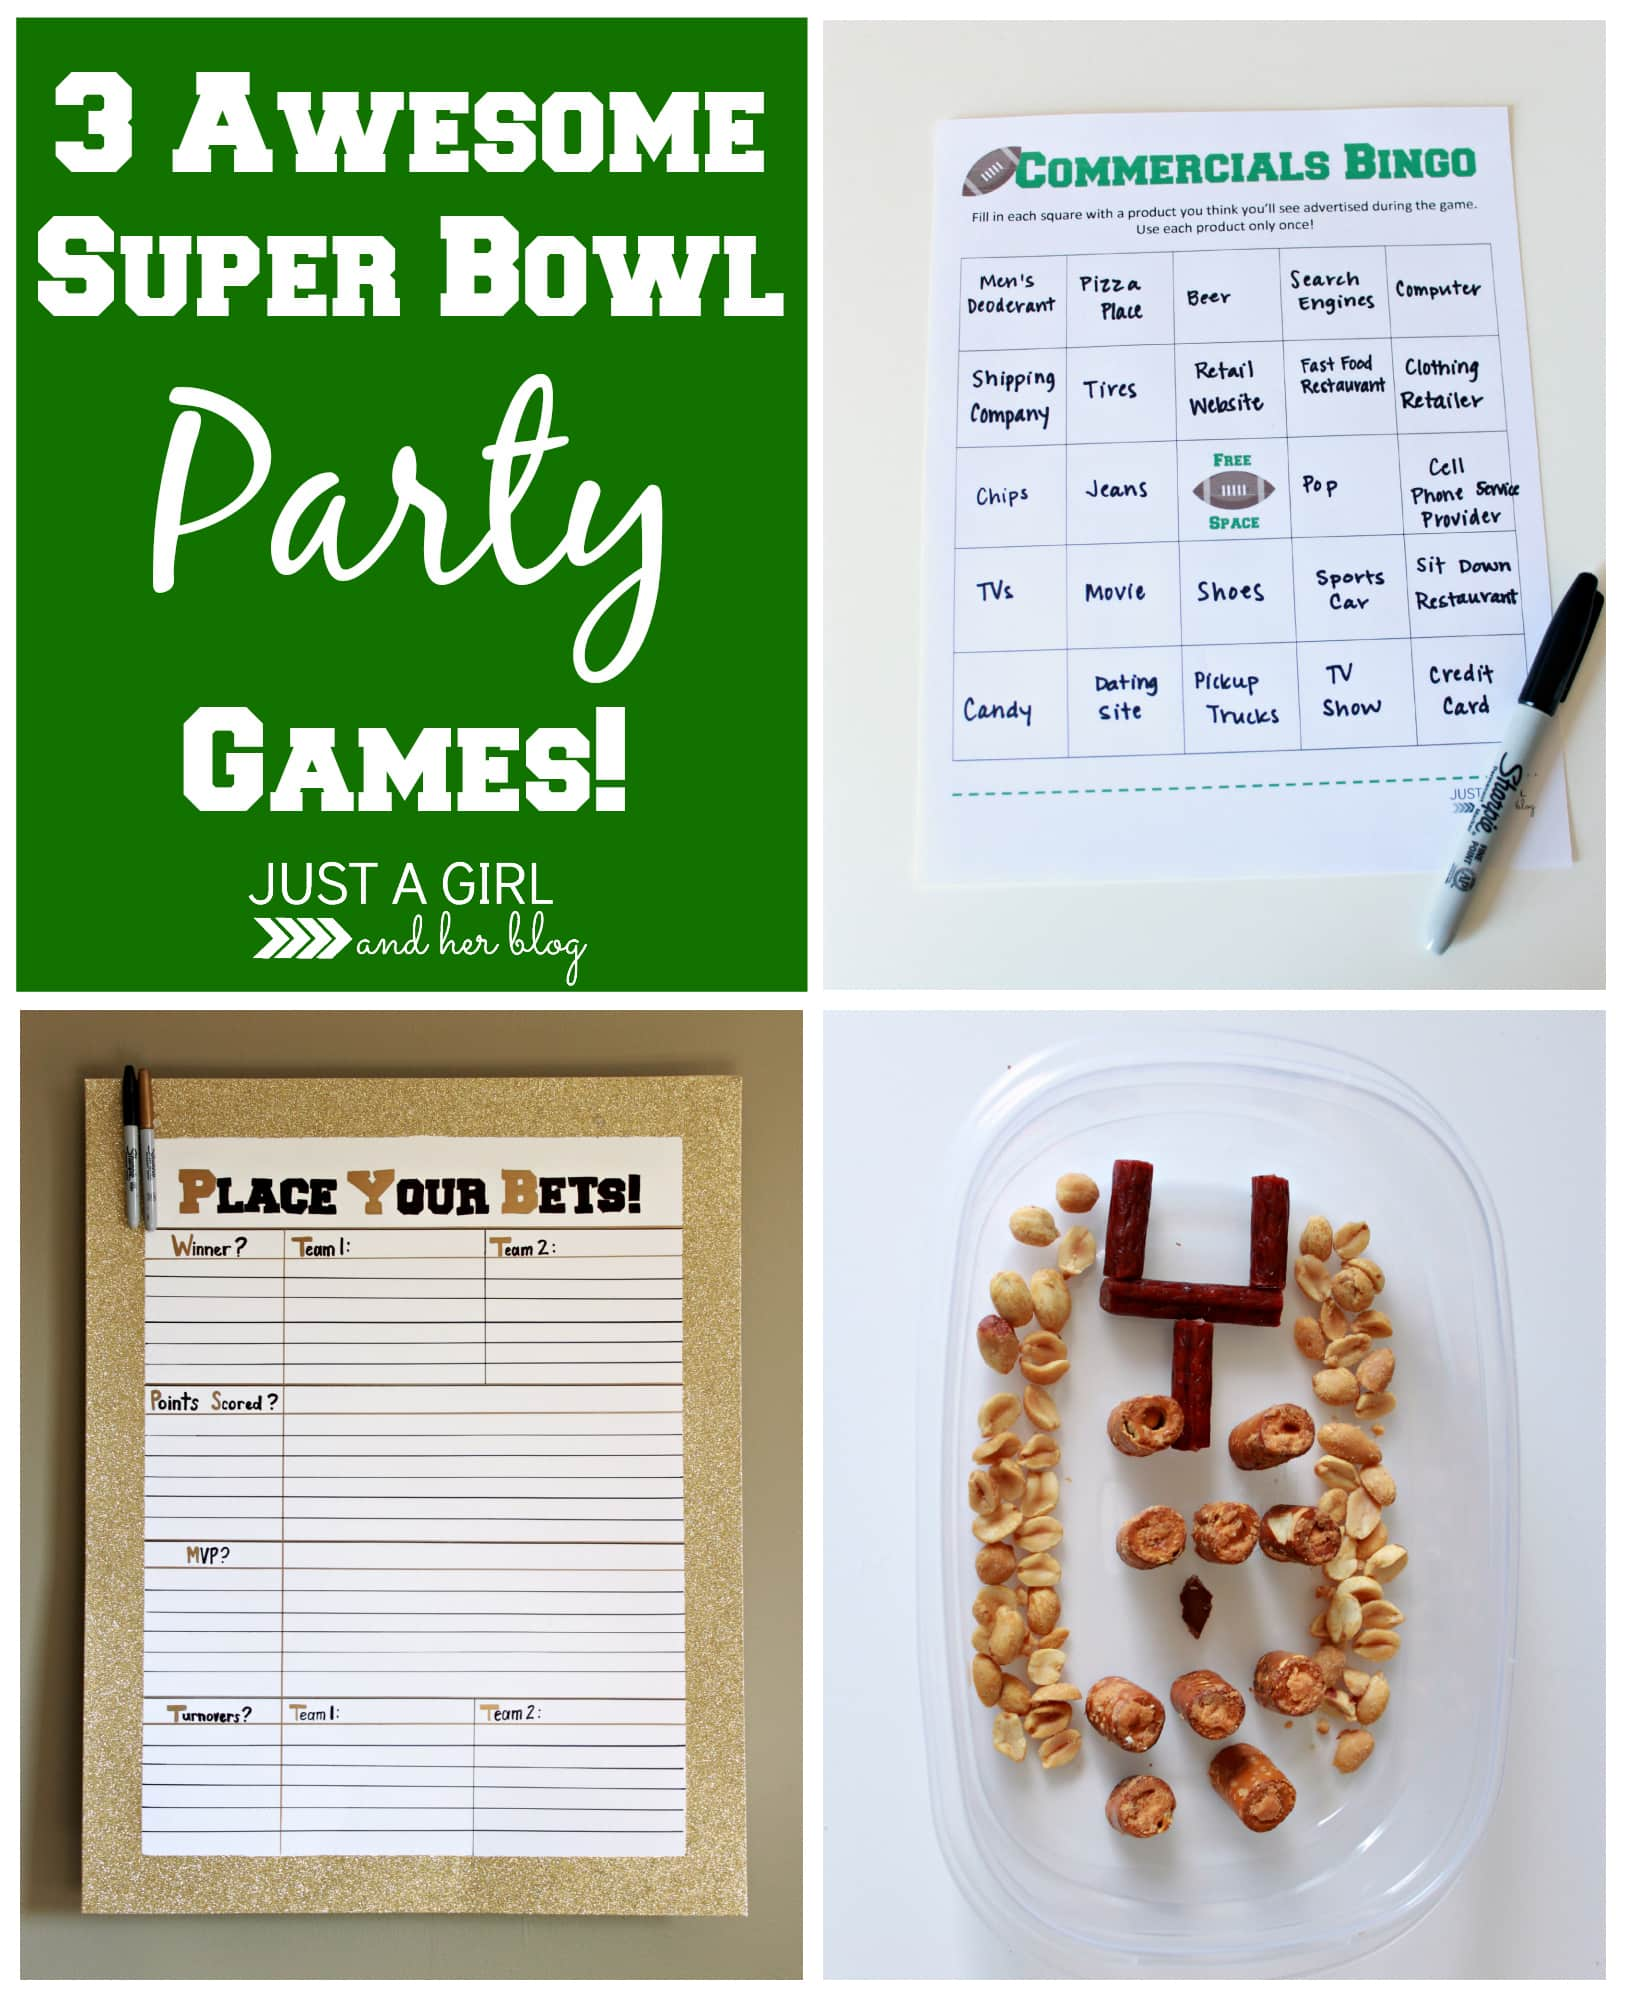 3 Awesome Super Bowl Party Games